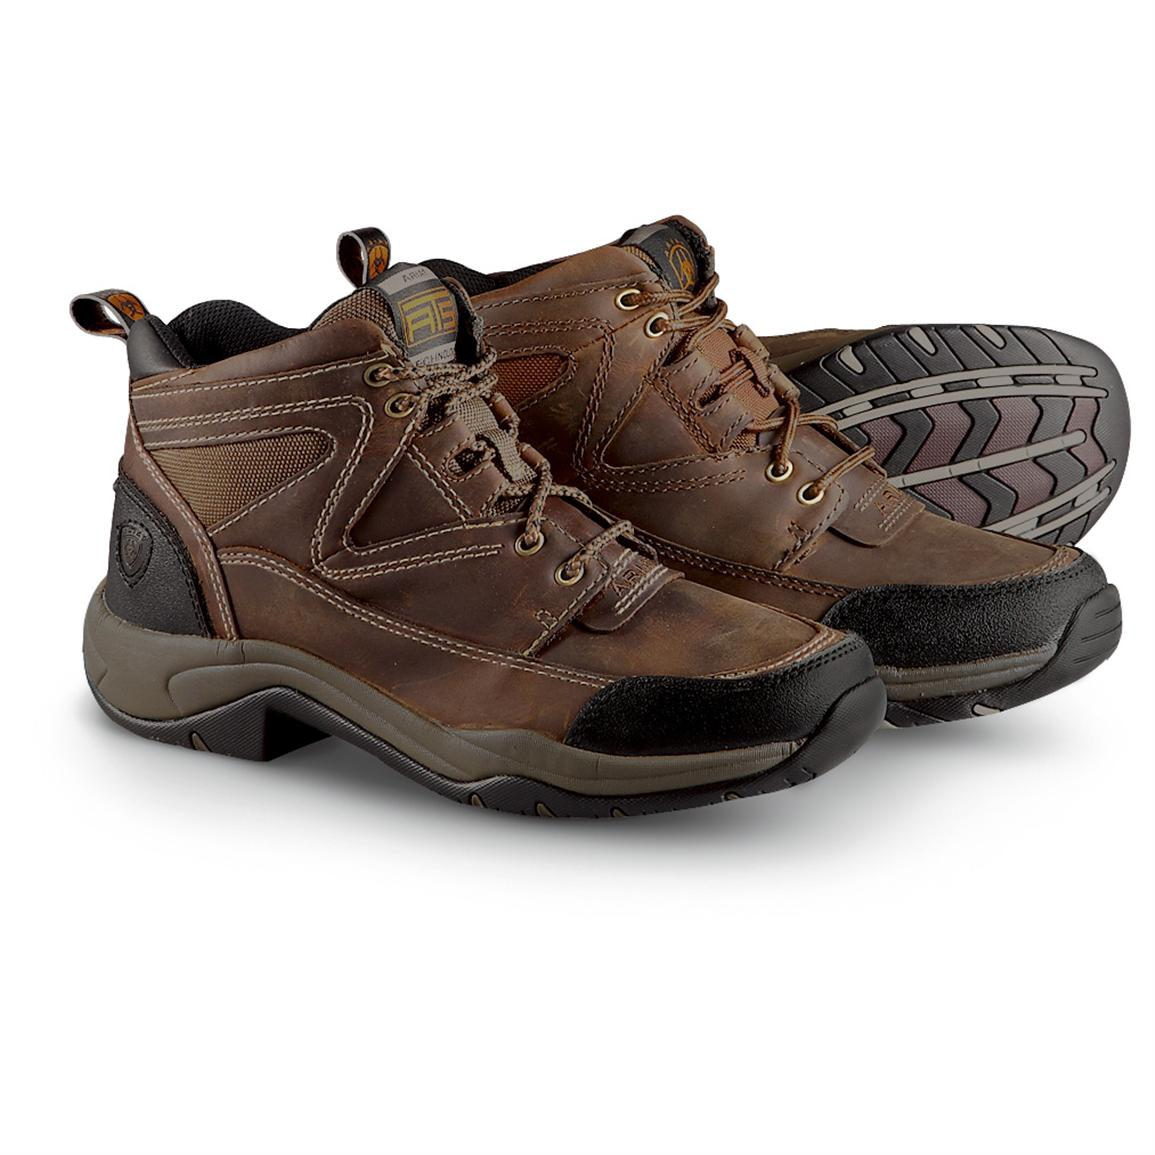 Ariat Work Boots On Sale 5EYKm2IB